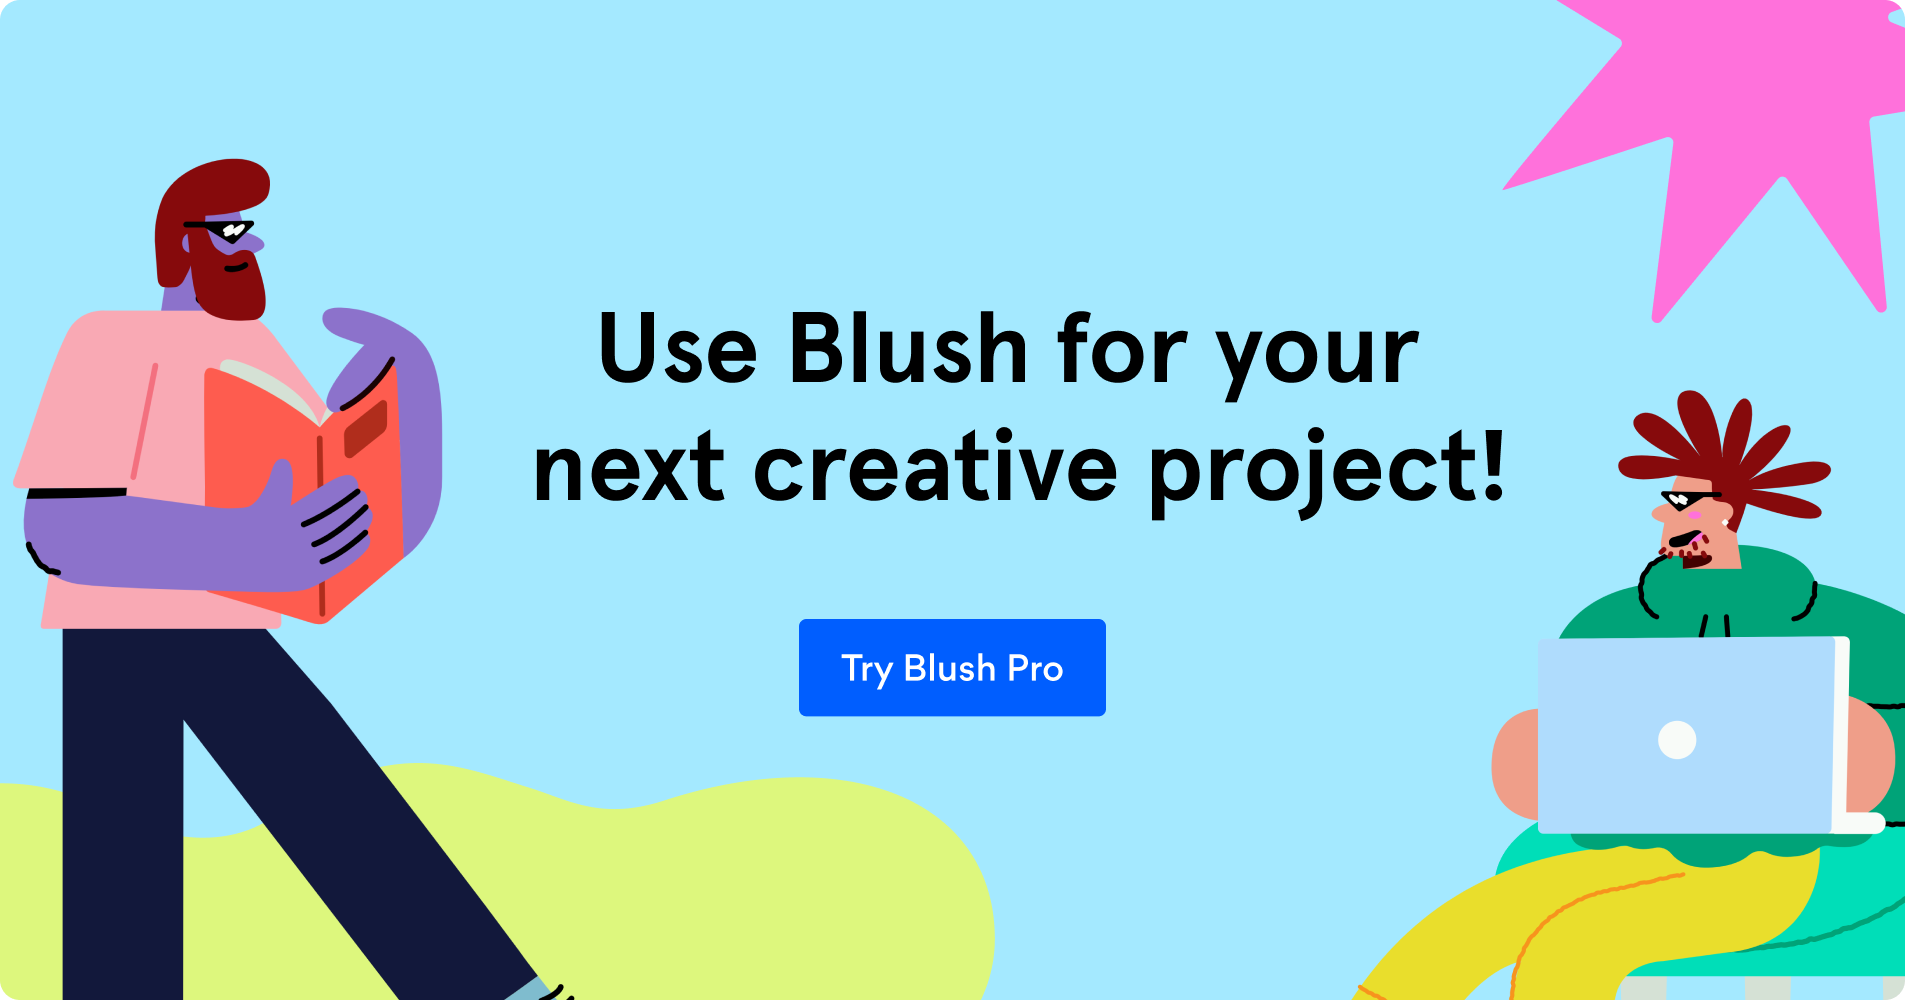 Call to action to get the trial for Blush Pro.